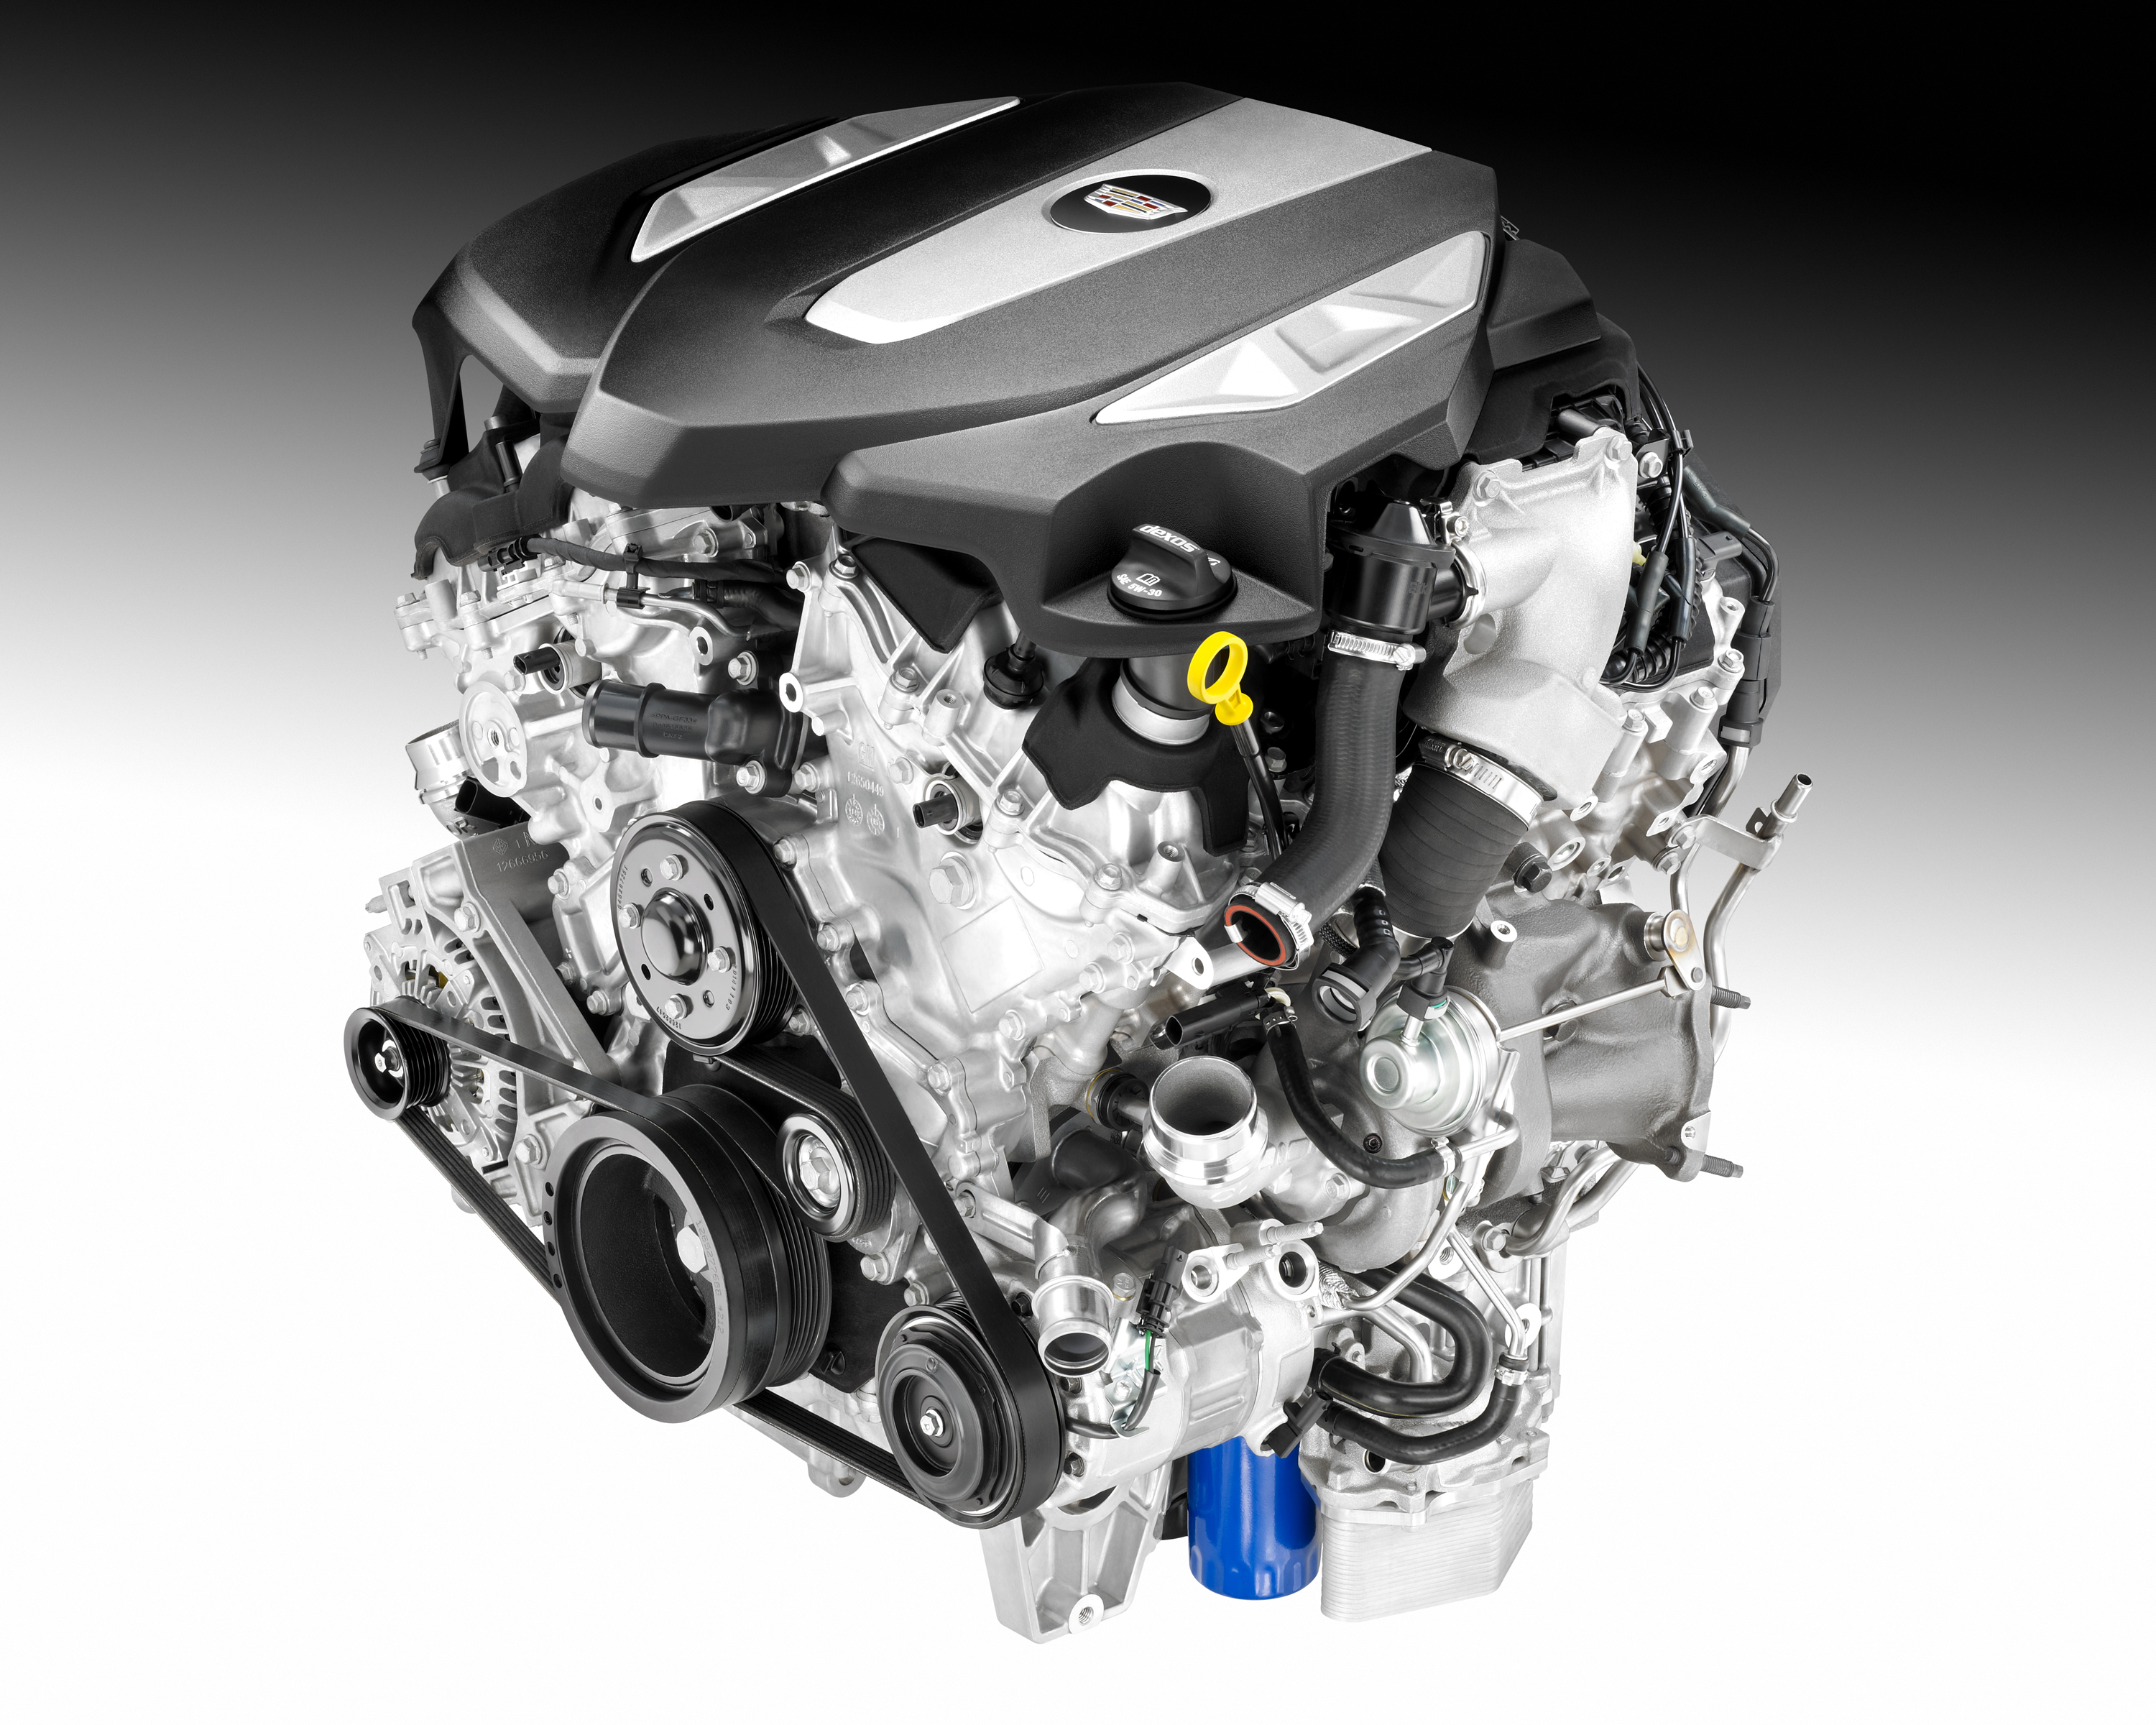 3.0L Twin-Turbo LGW V6 Engine To Power the 2016 Cadillac CT6 - autoevolution